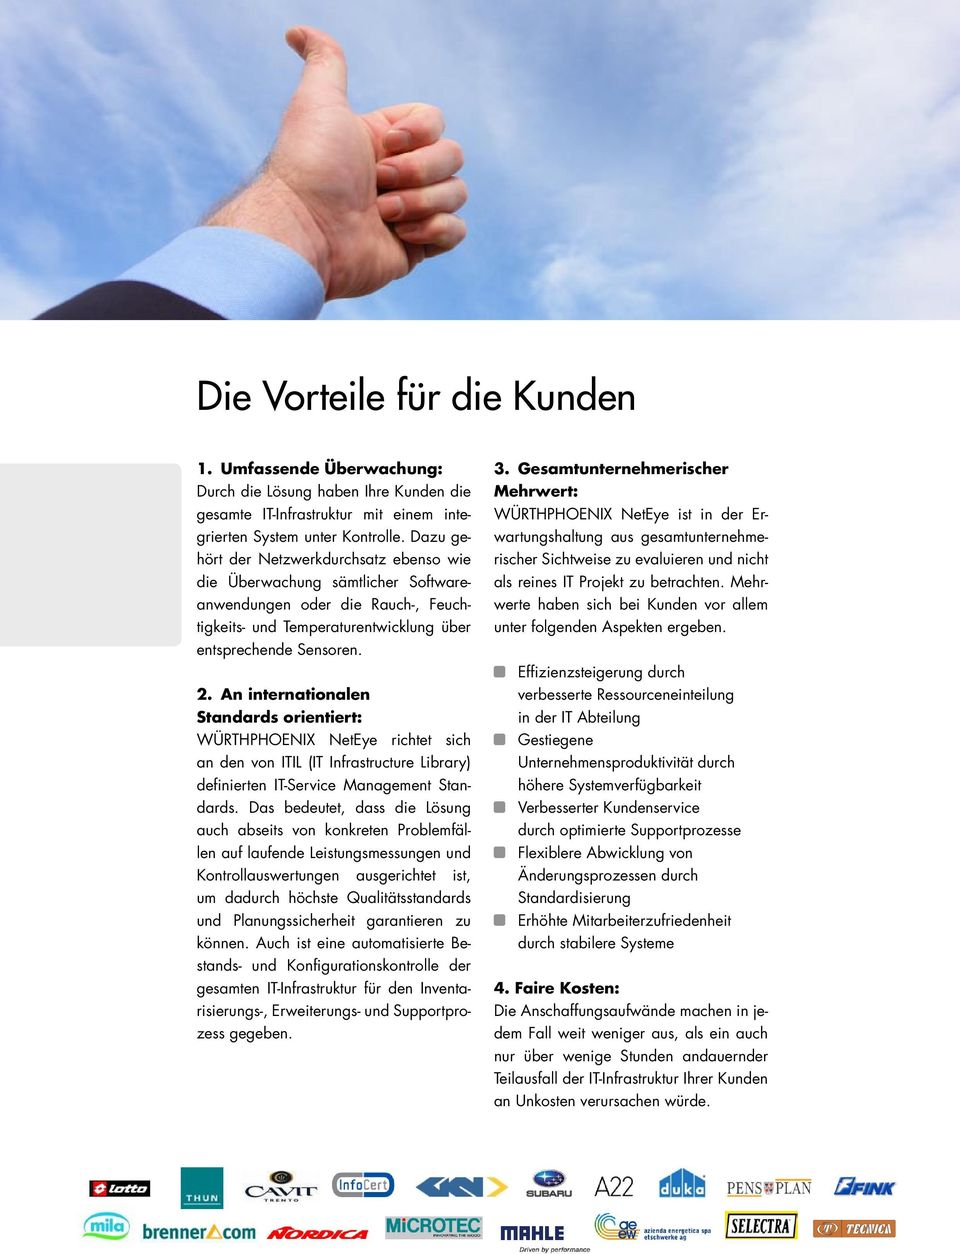 An internationalen Standards orientiert: WÜRTHPHOENIX NetEye richtet sich an den von ITIL (IT Infrastructure Library) definierten IT-Service Management Standards.